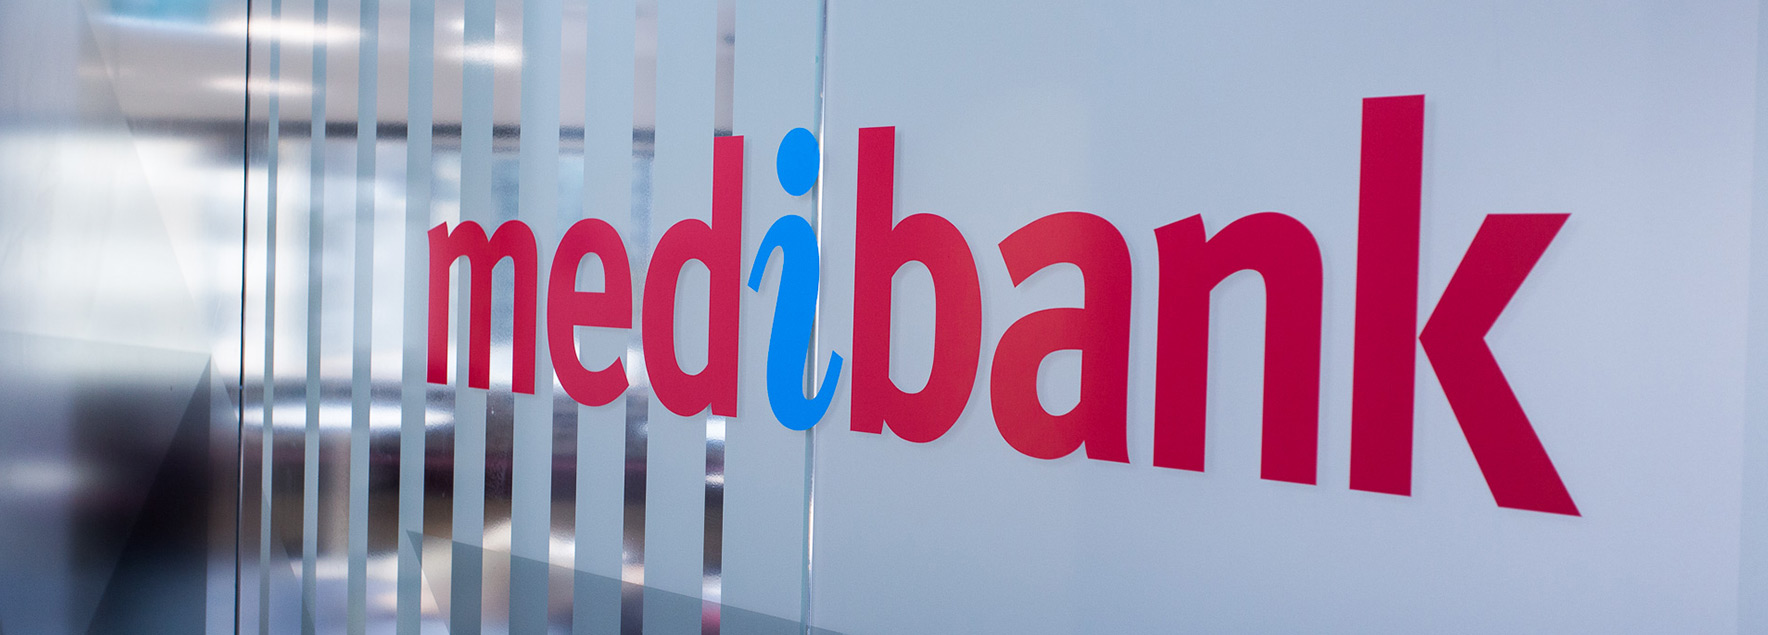 medibank logo on glass